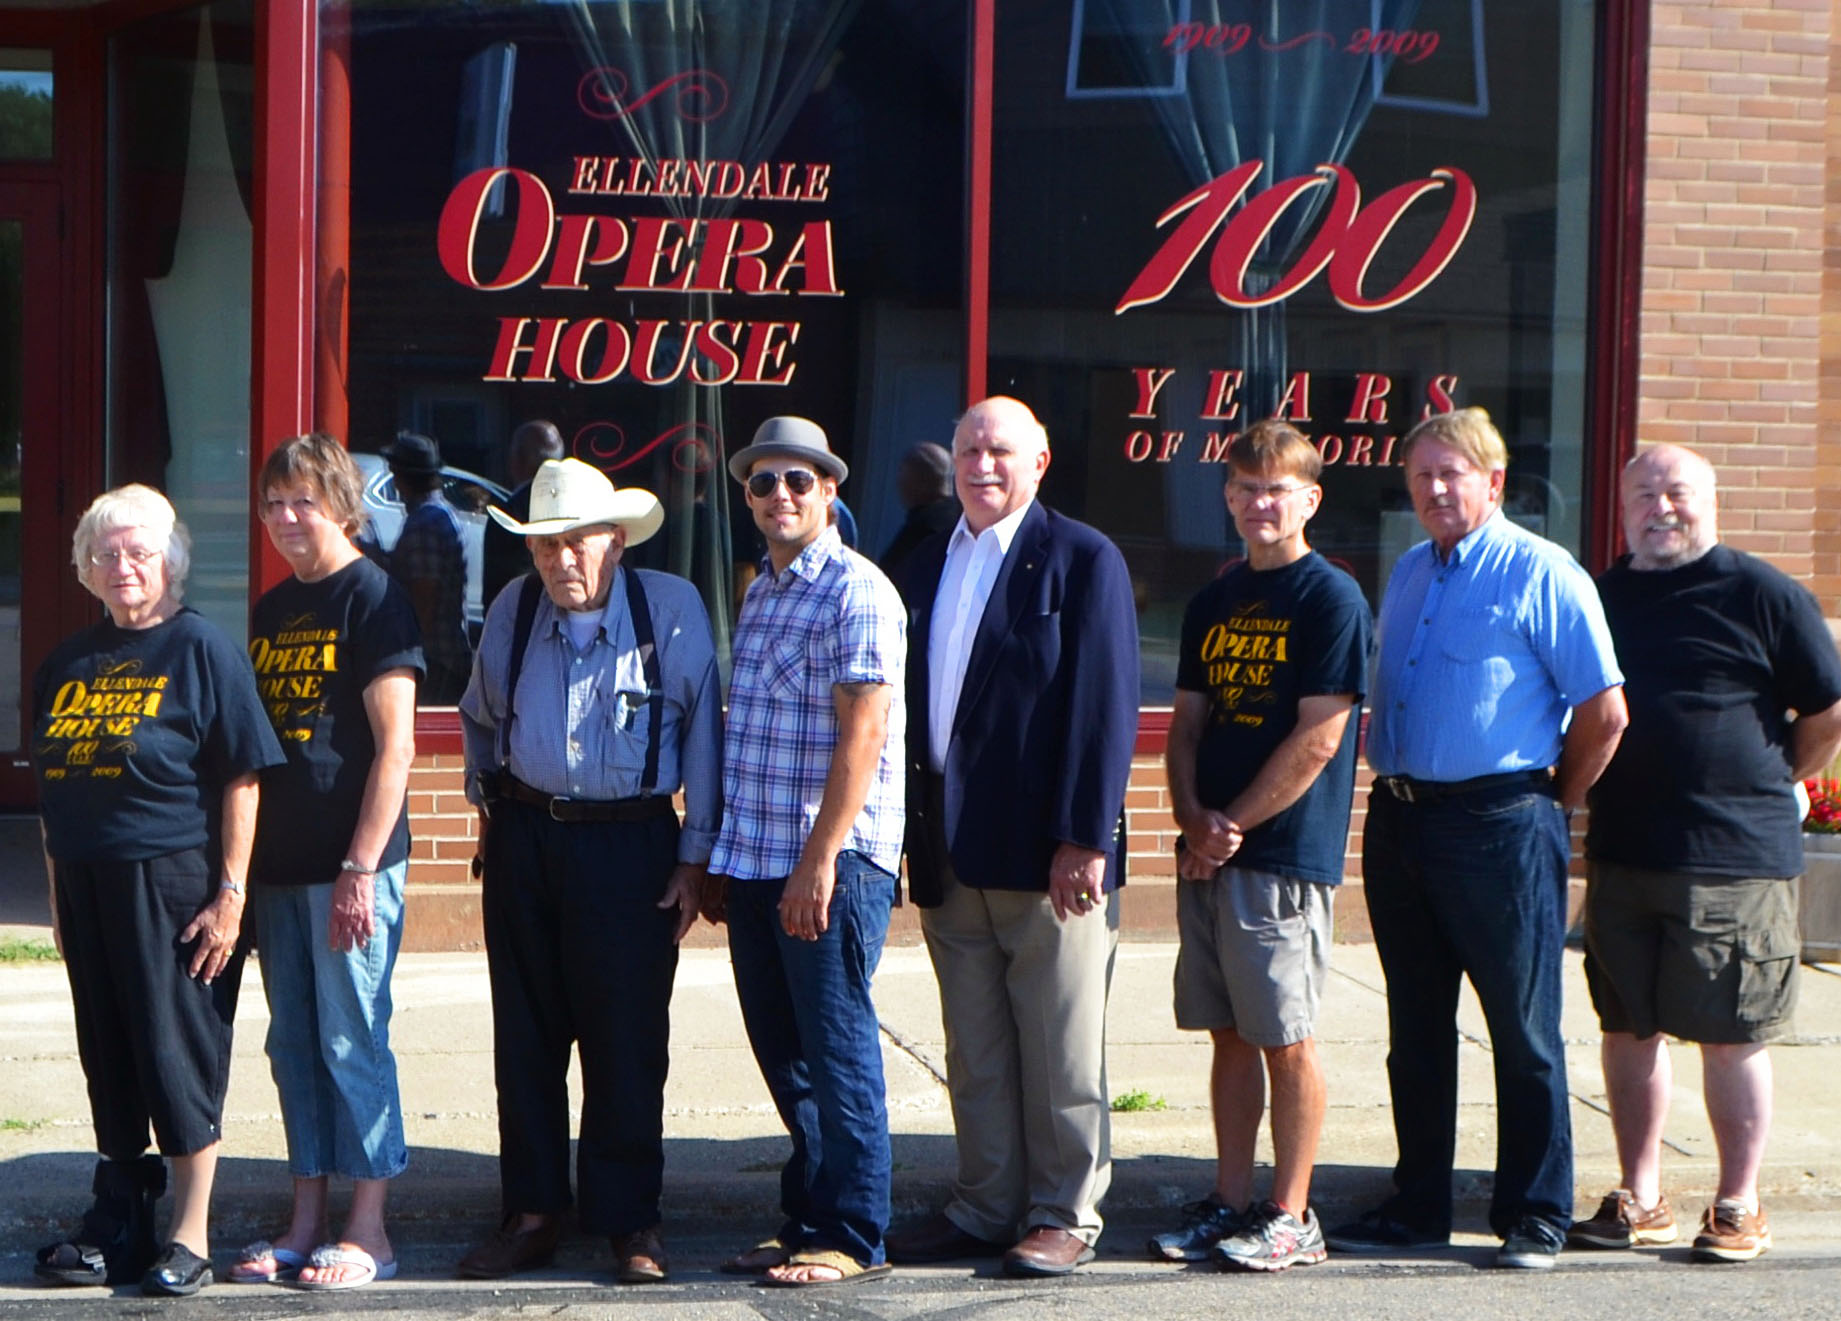 Members of OPERA, Inc., have overseen nearly $275,000 in renovations to the historic Opera House since 2002.